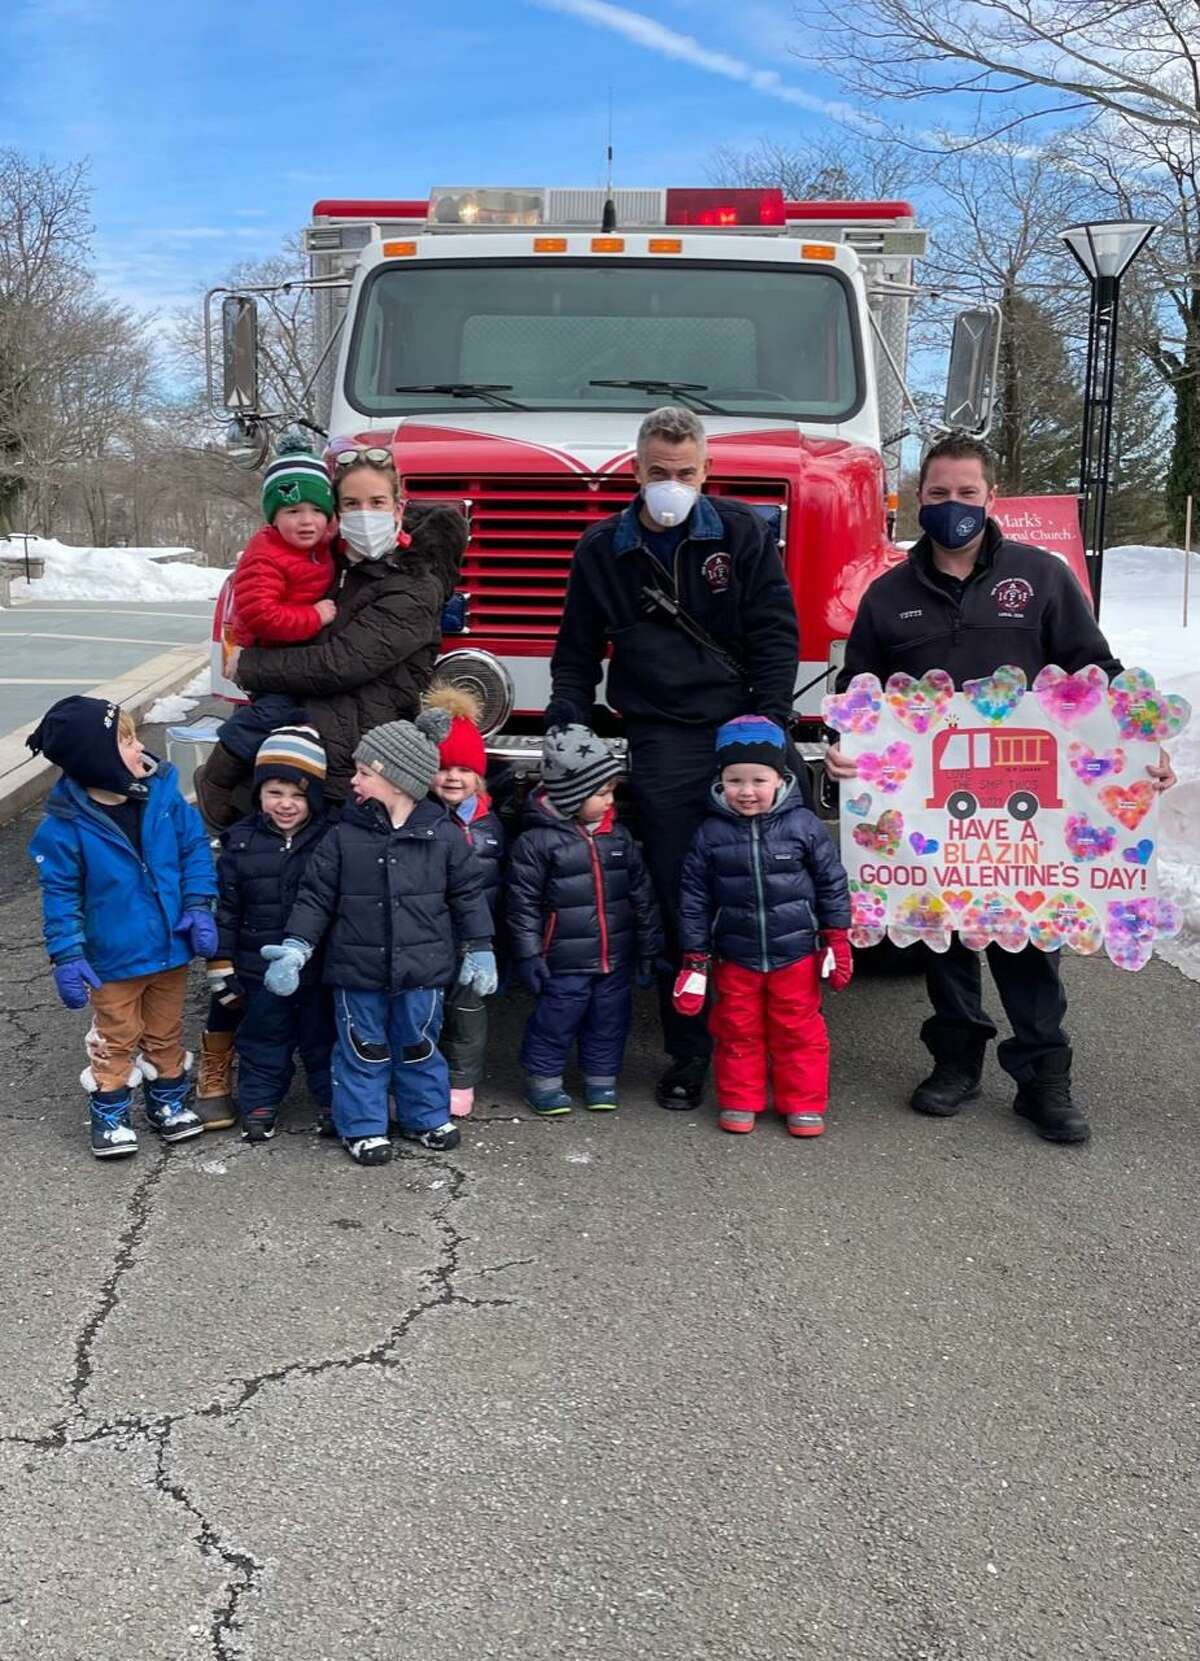 St. Mark's Preschool in New Canaan recently delivered Valentines to essential workers in the town amid the coronavirus pandemic.